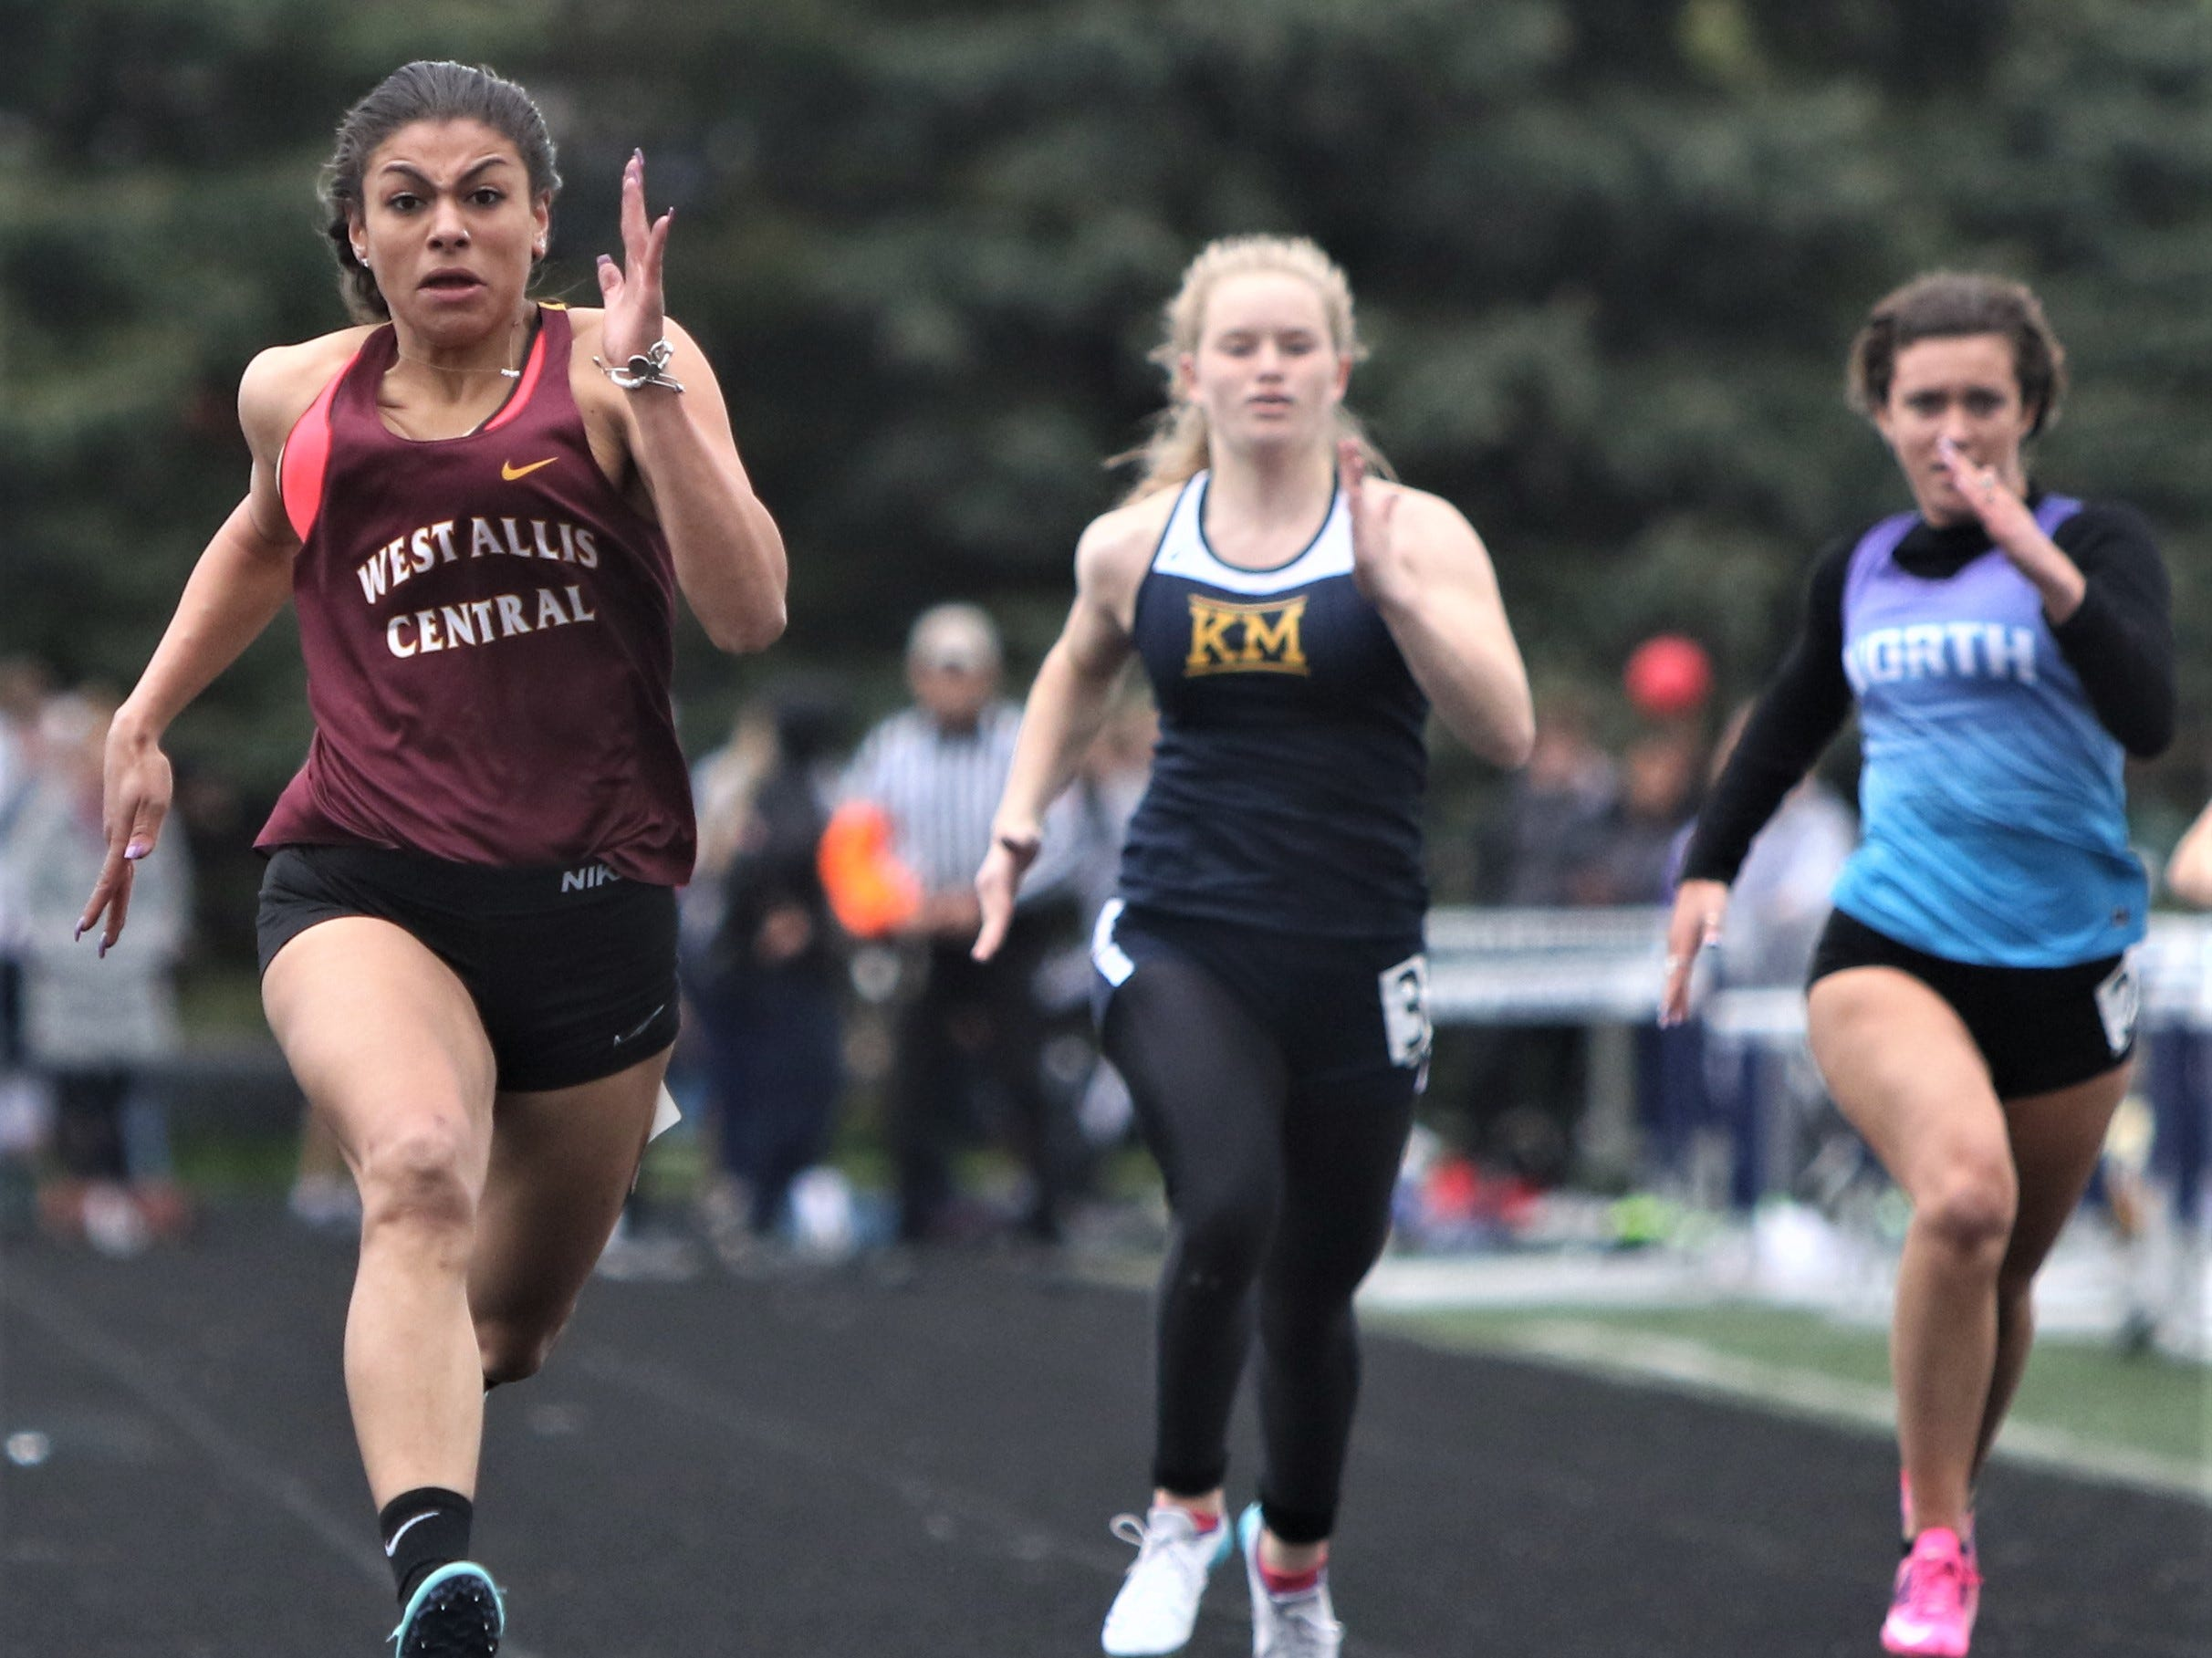 West Allis Central's Dana Hohenstein wins the 100 meter dash during the WIAA regional at Kettle Moraine on May 20, 2019.